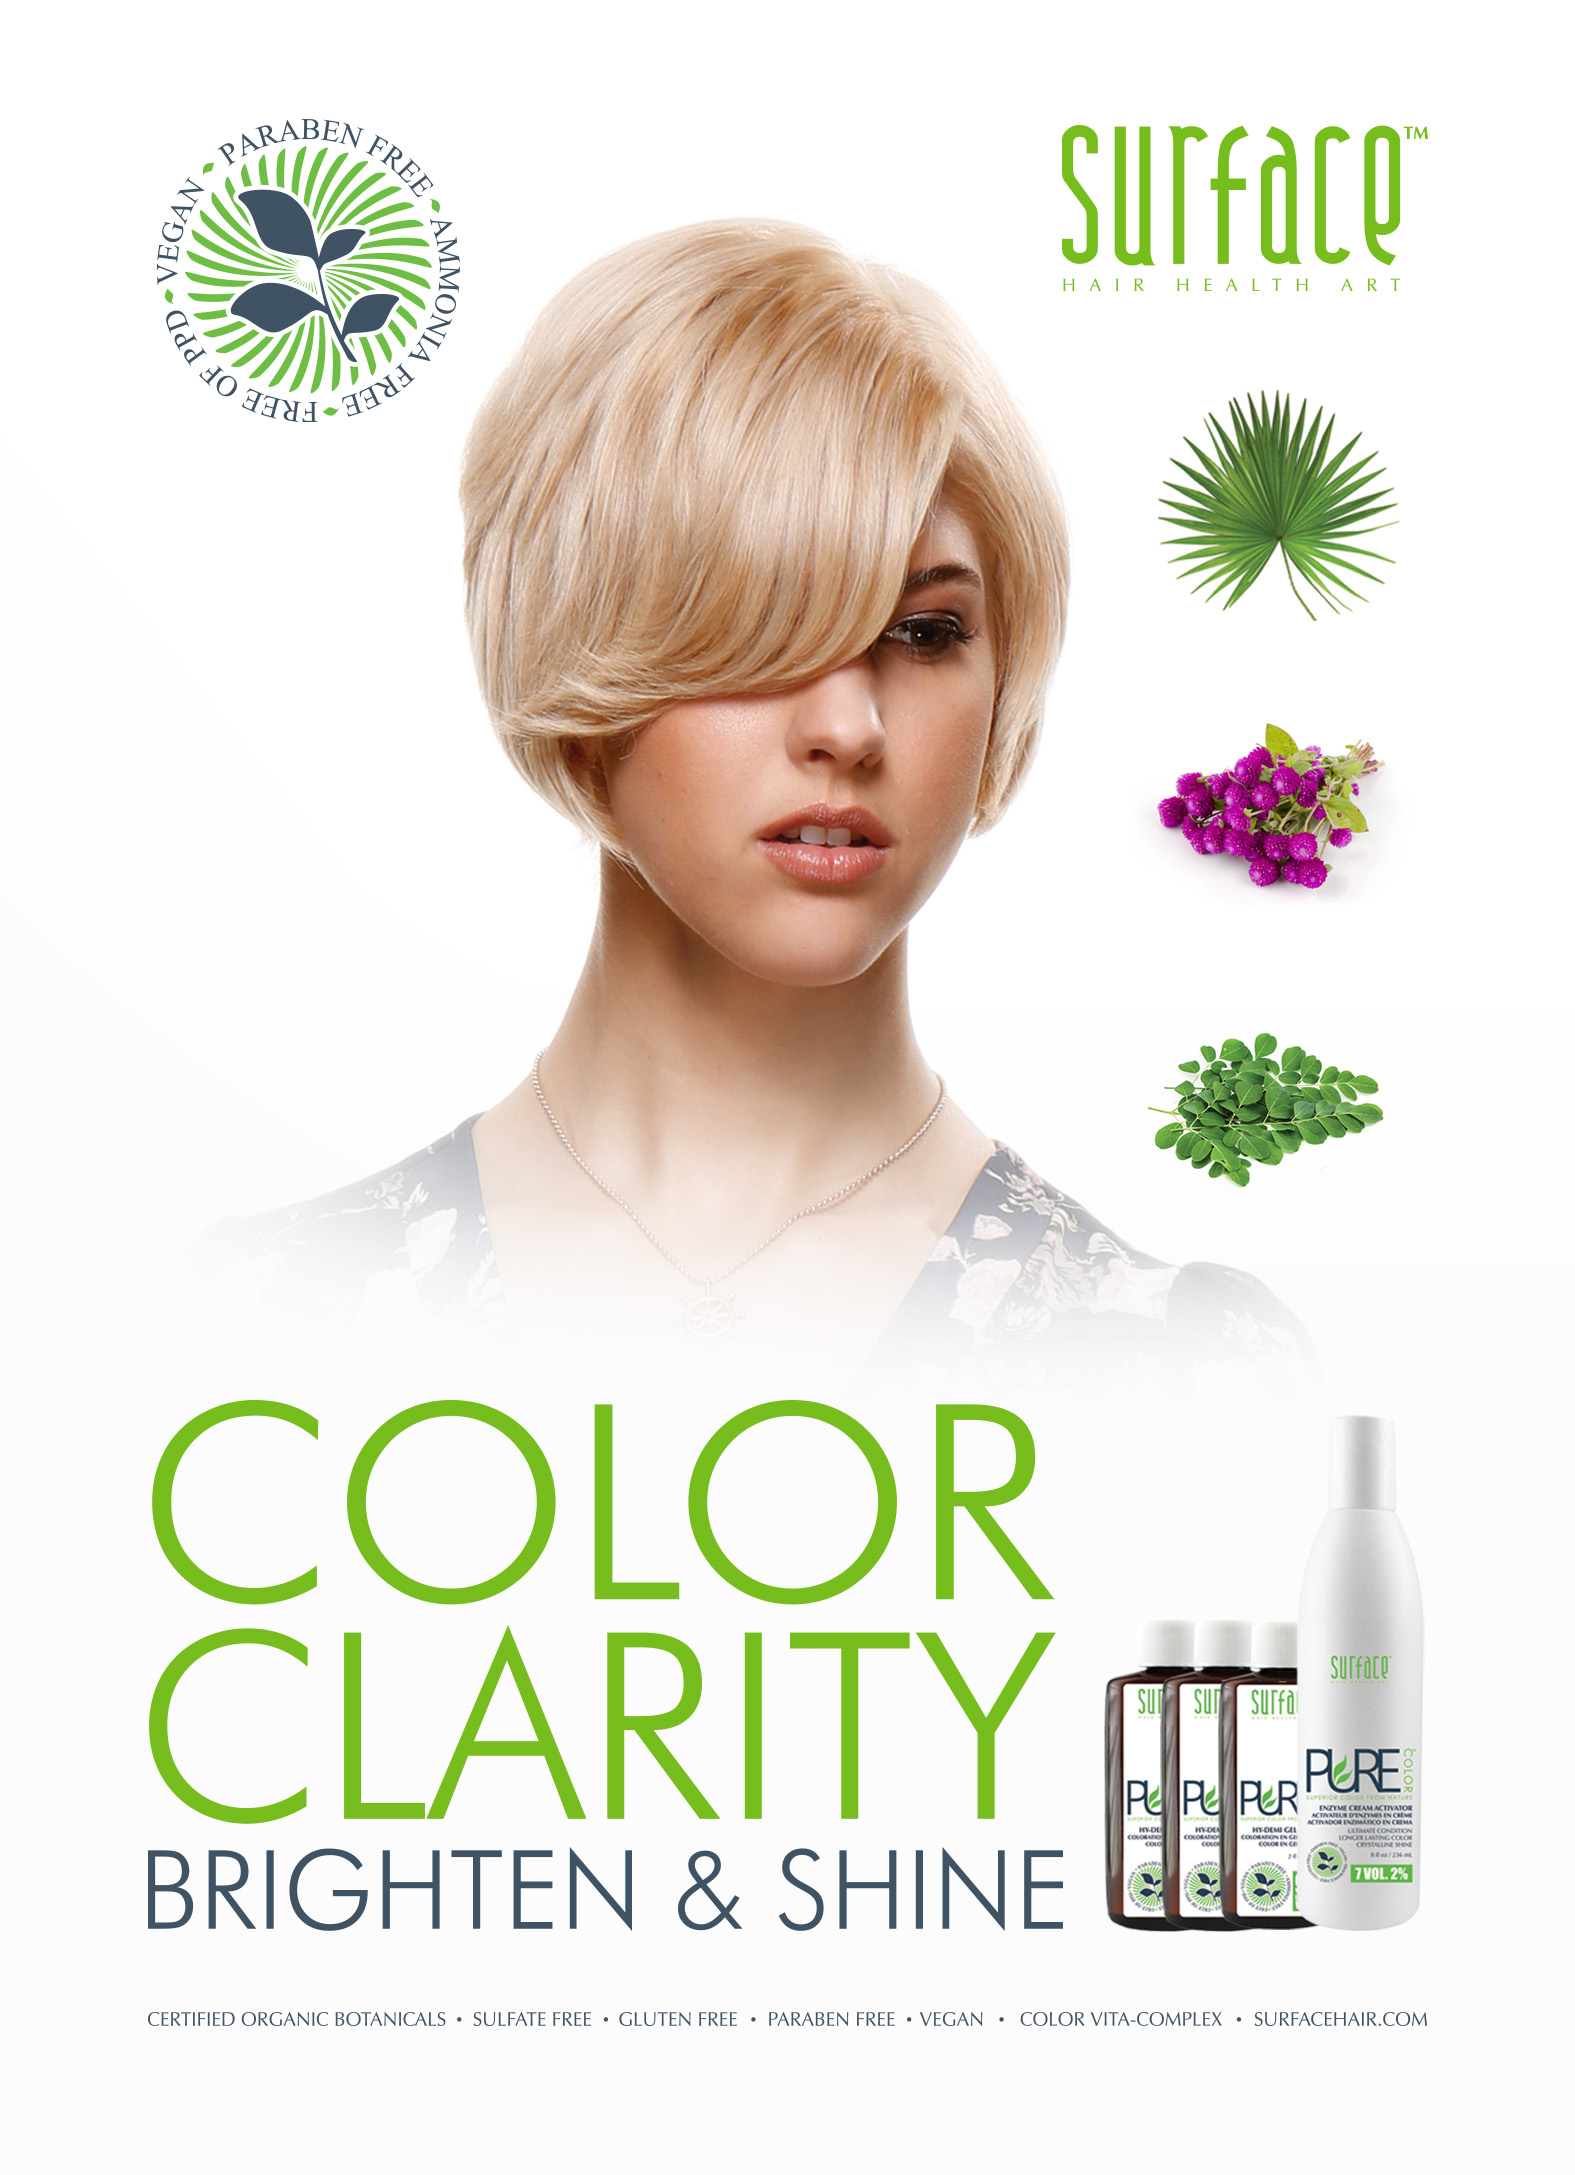 Colorclarity5x7g